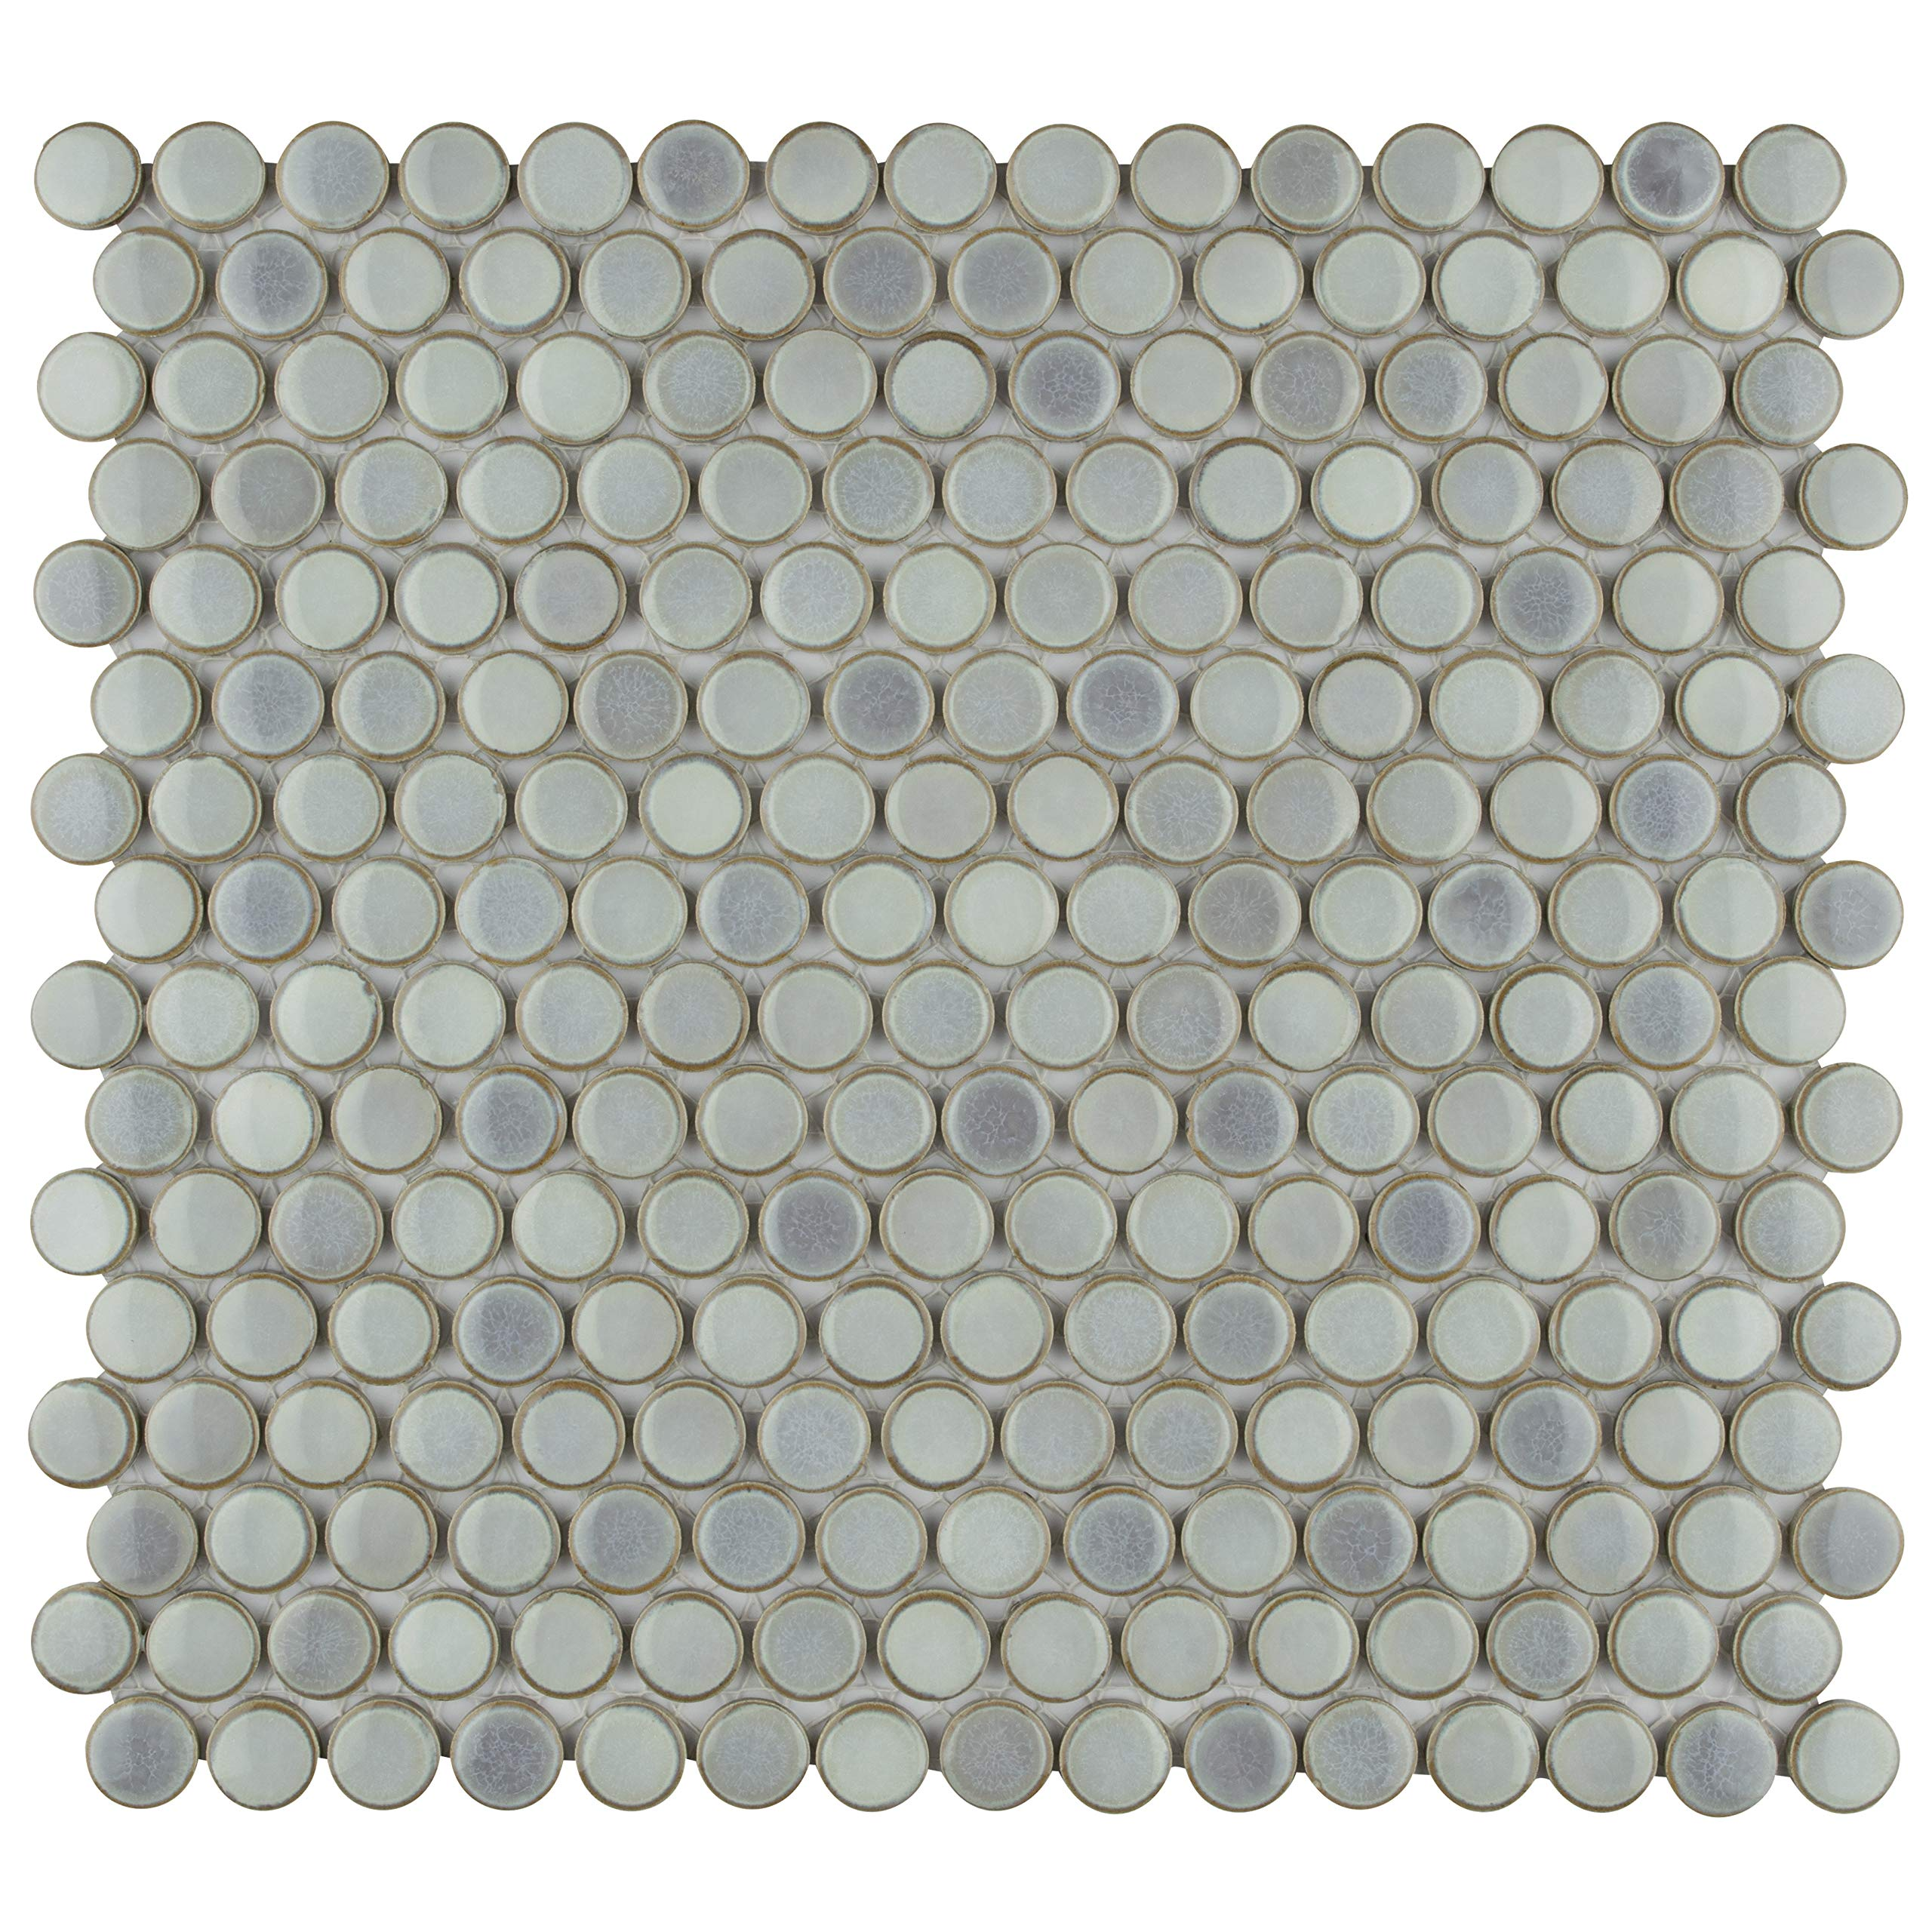 SomerTile FKOMPR12 Penny Eye Porcelain Mosaic Floor and Wall, 12'' x 12.625'', Grey Tile, 10 Piece